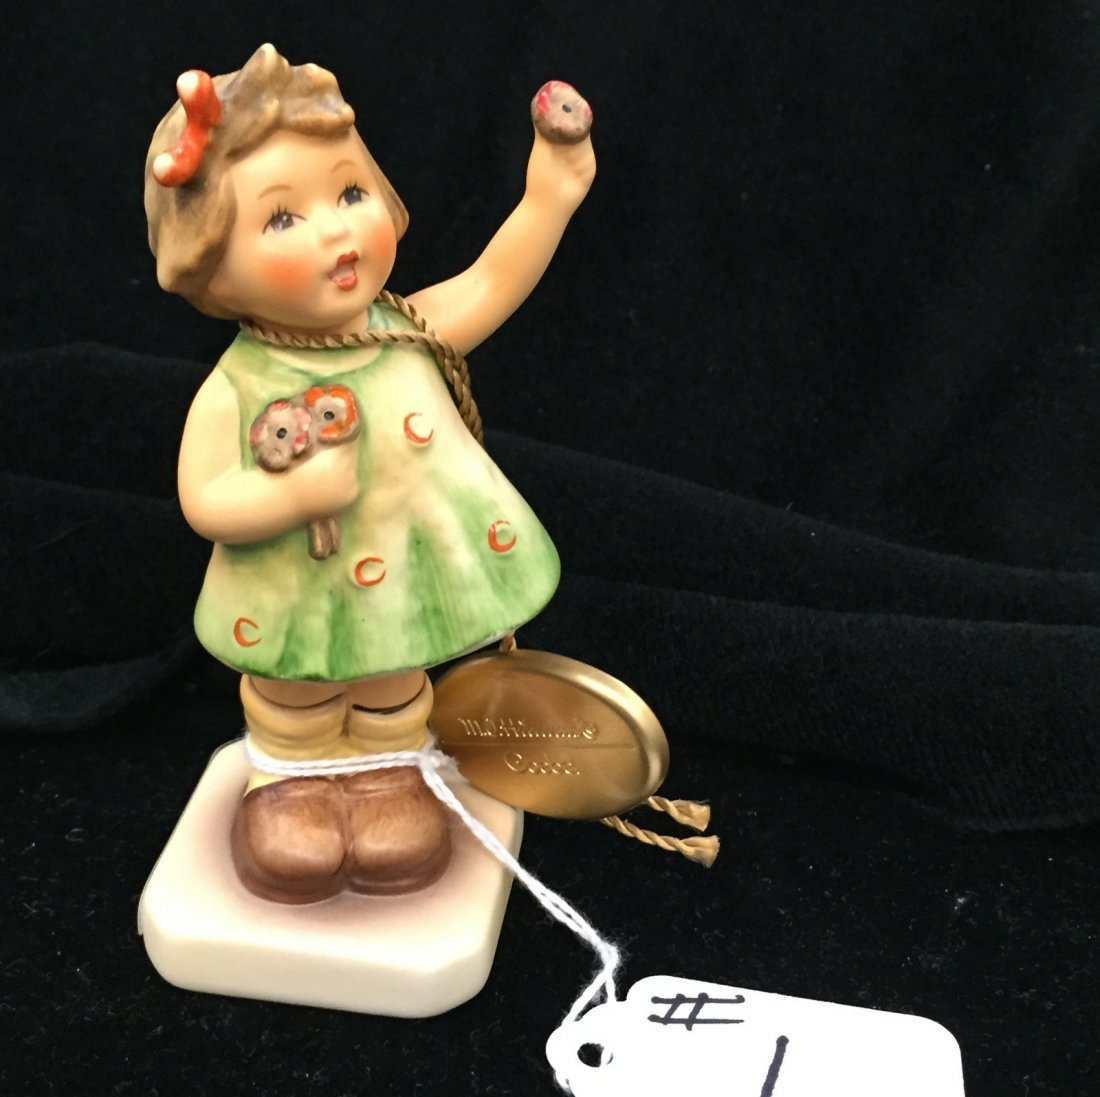 Hummel Figurine: Forever Yours; Collectors Club Edition